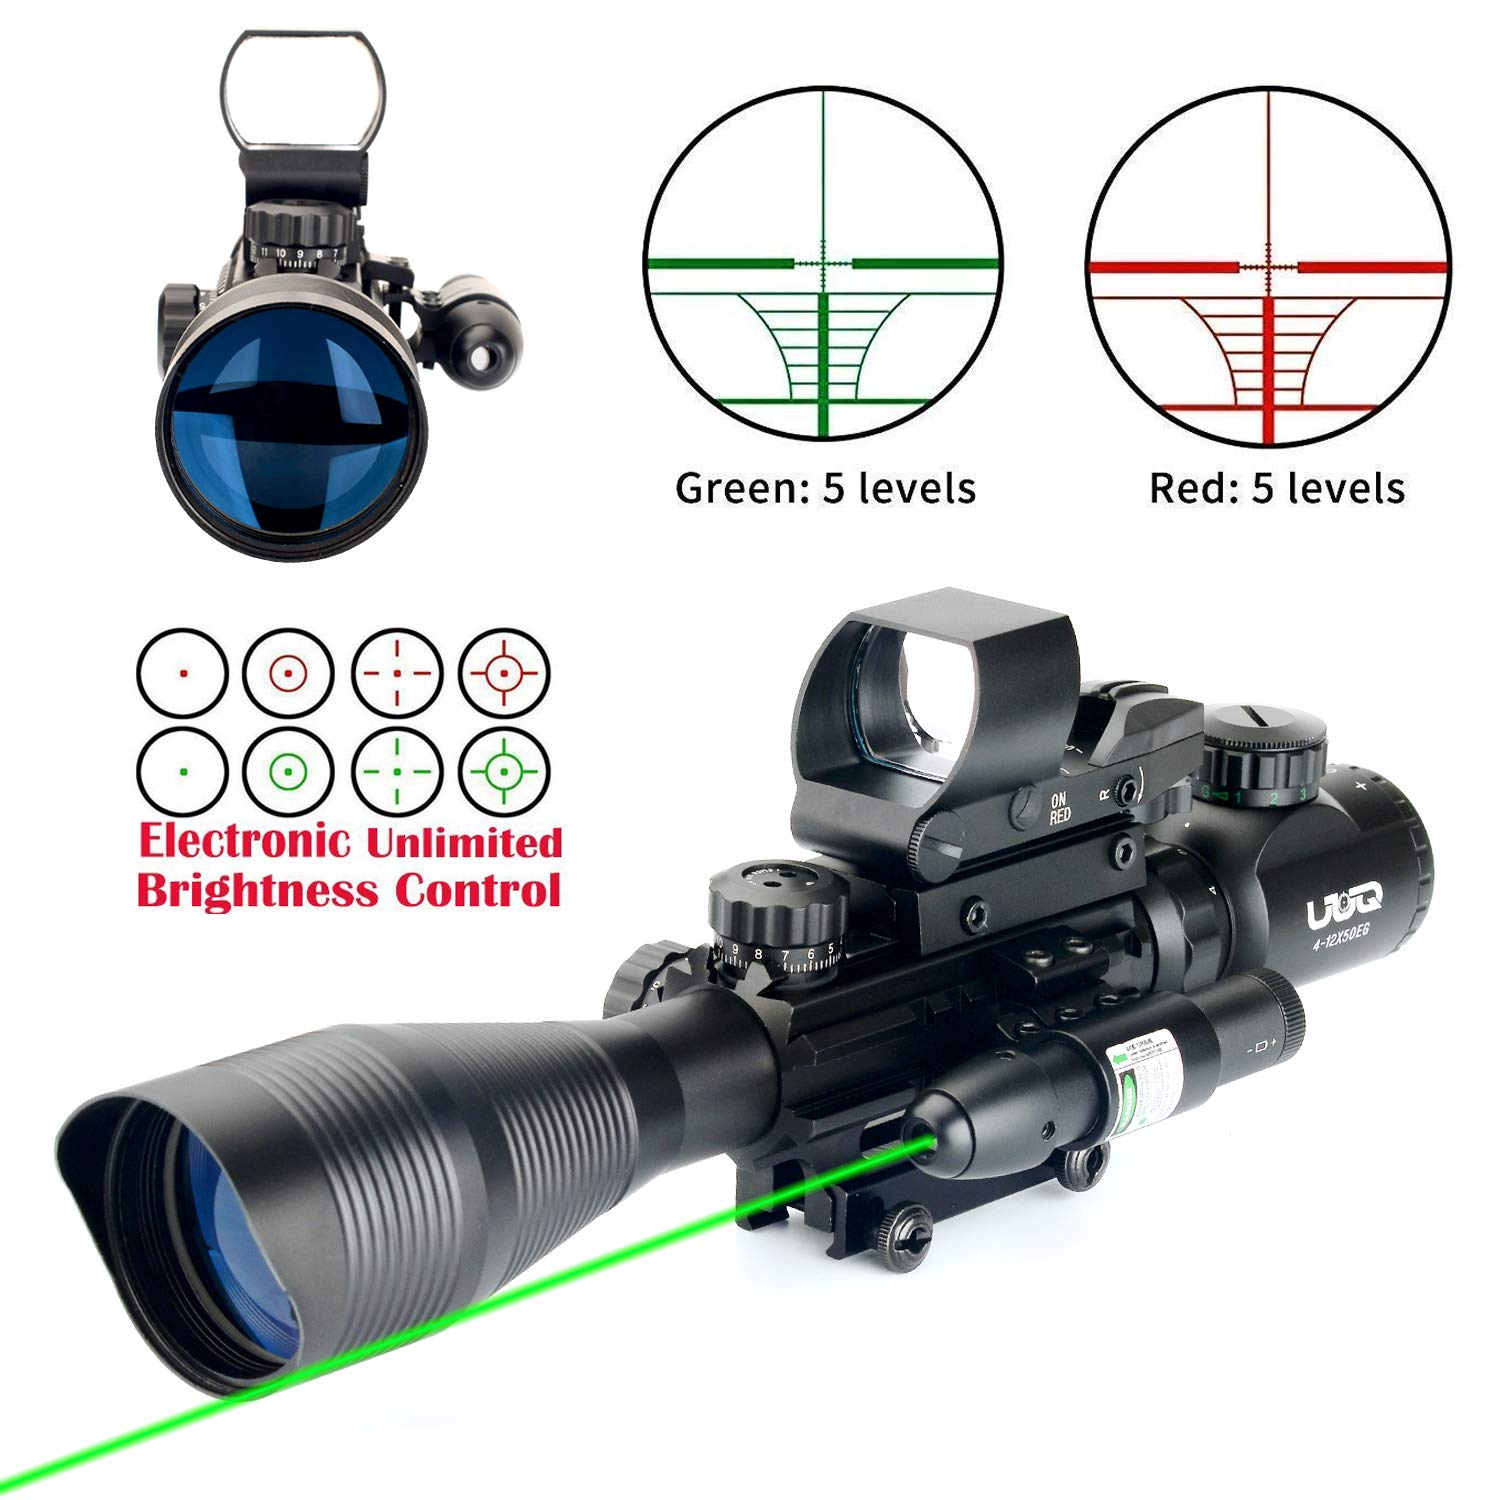 UUQ 4-12X50 Rifle Scope Dual Illuminated Reticle W Green RED Laser Sight and 4 Tactical Holographic Dot Reflex Sight 12 Month Warranty 4-12X50 Green Laser 104 Dot Sight